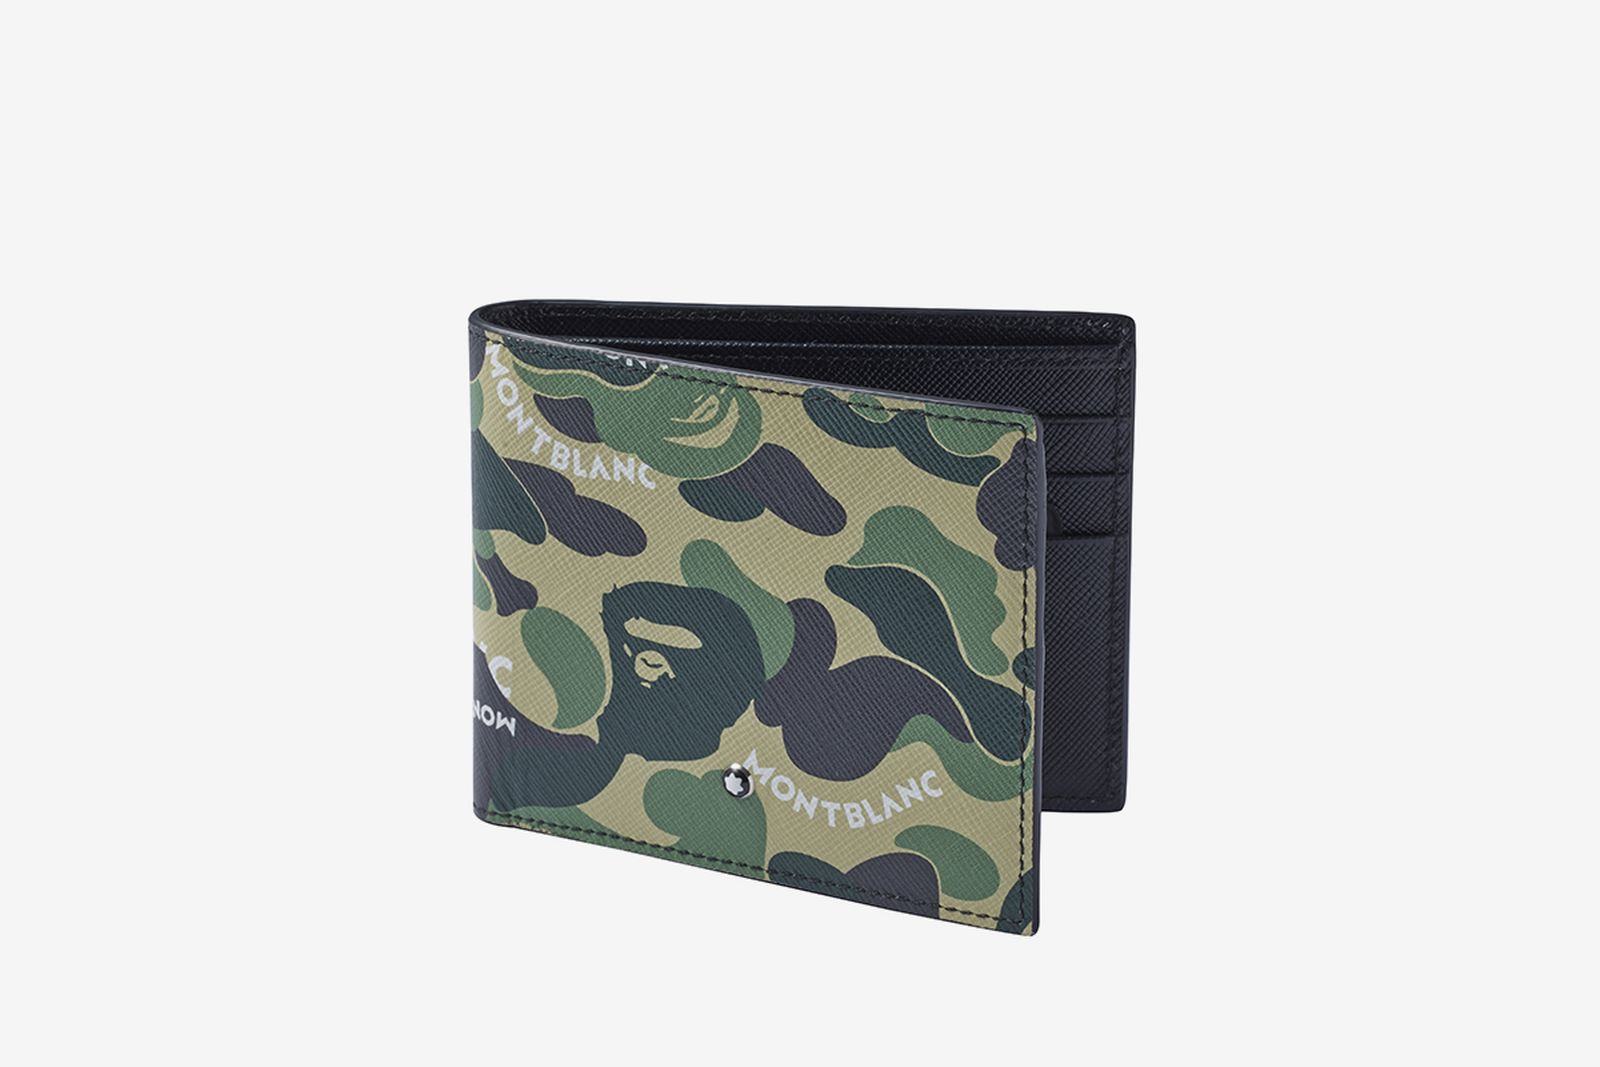 bape montblanc leather collection A Bathing Ape